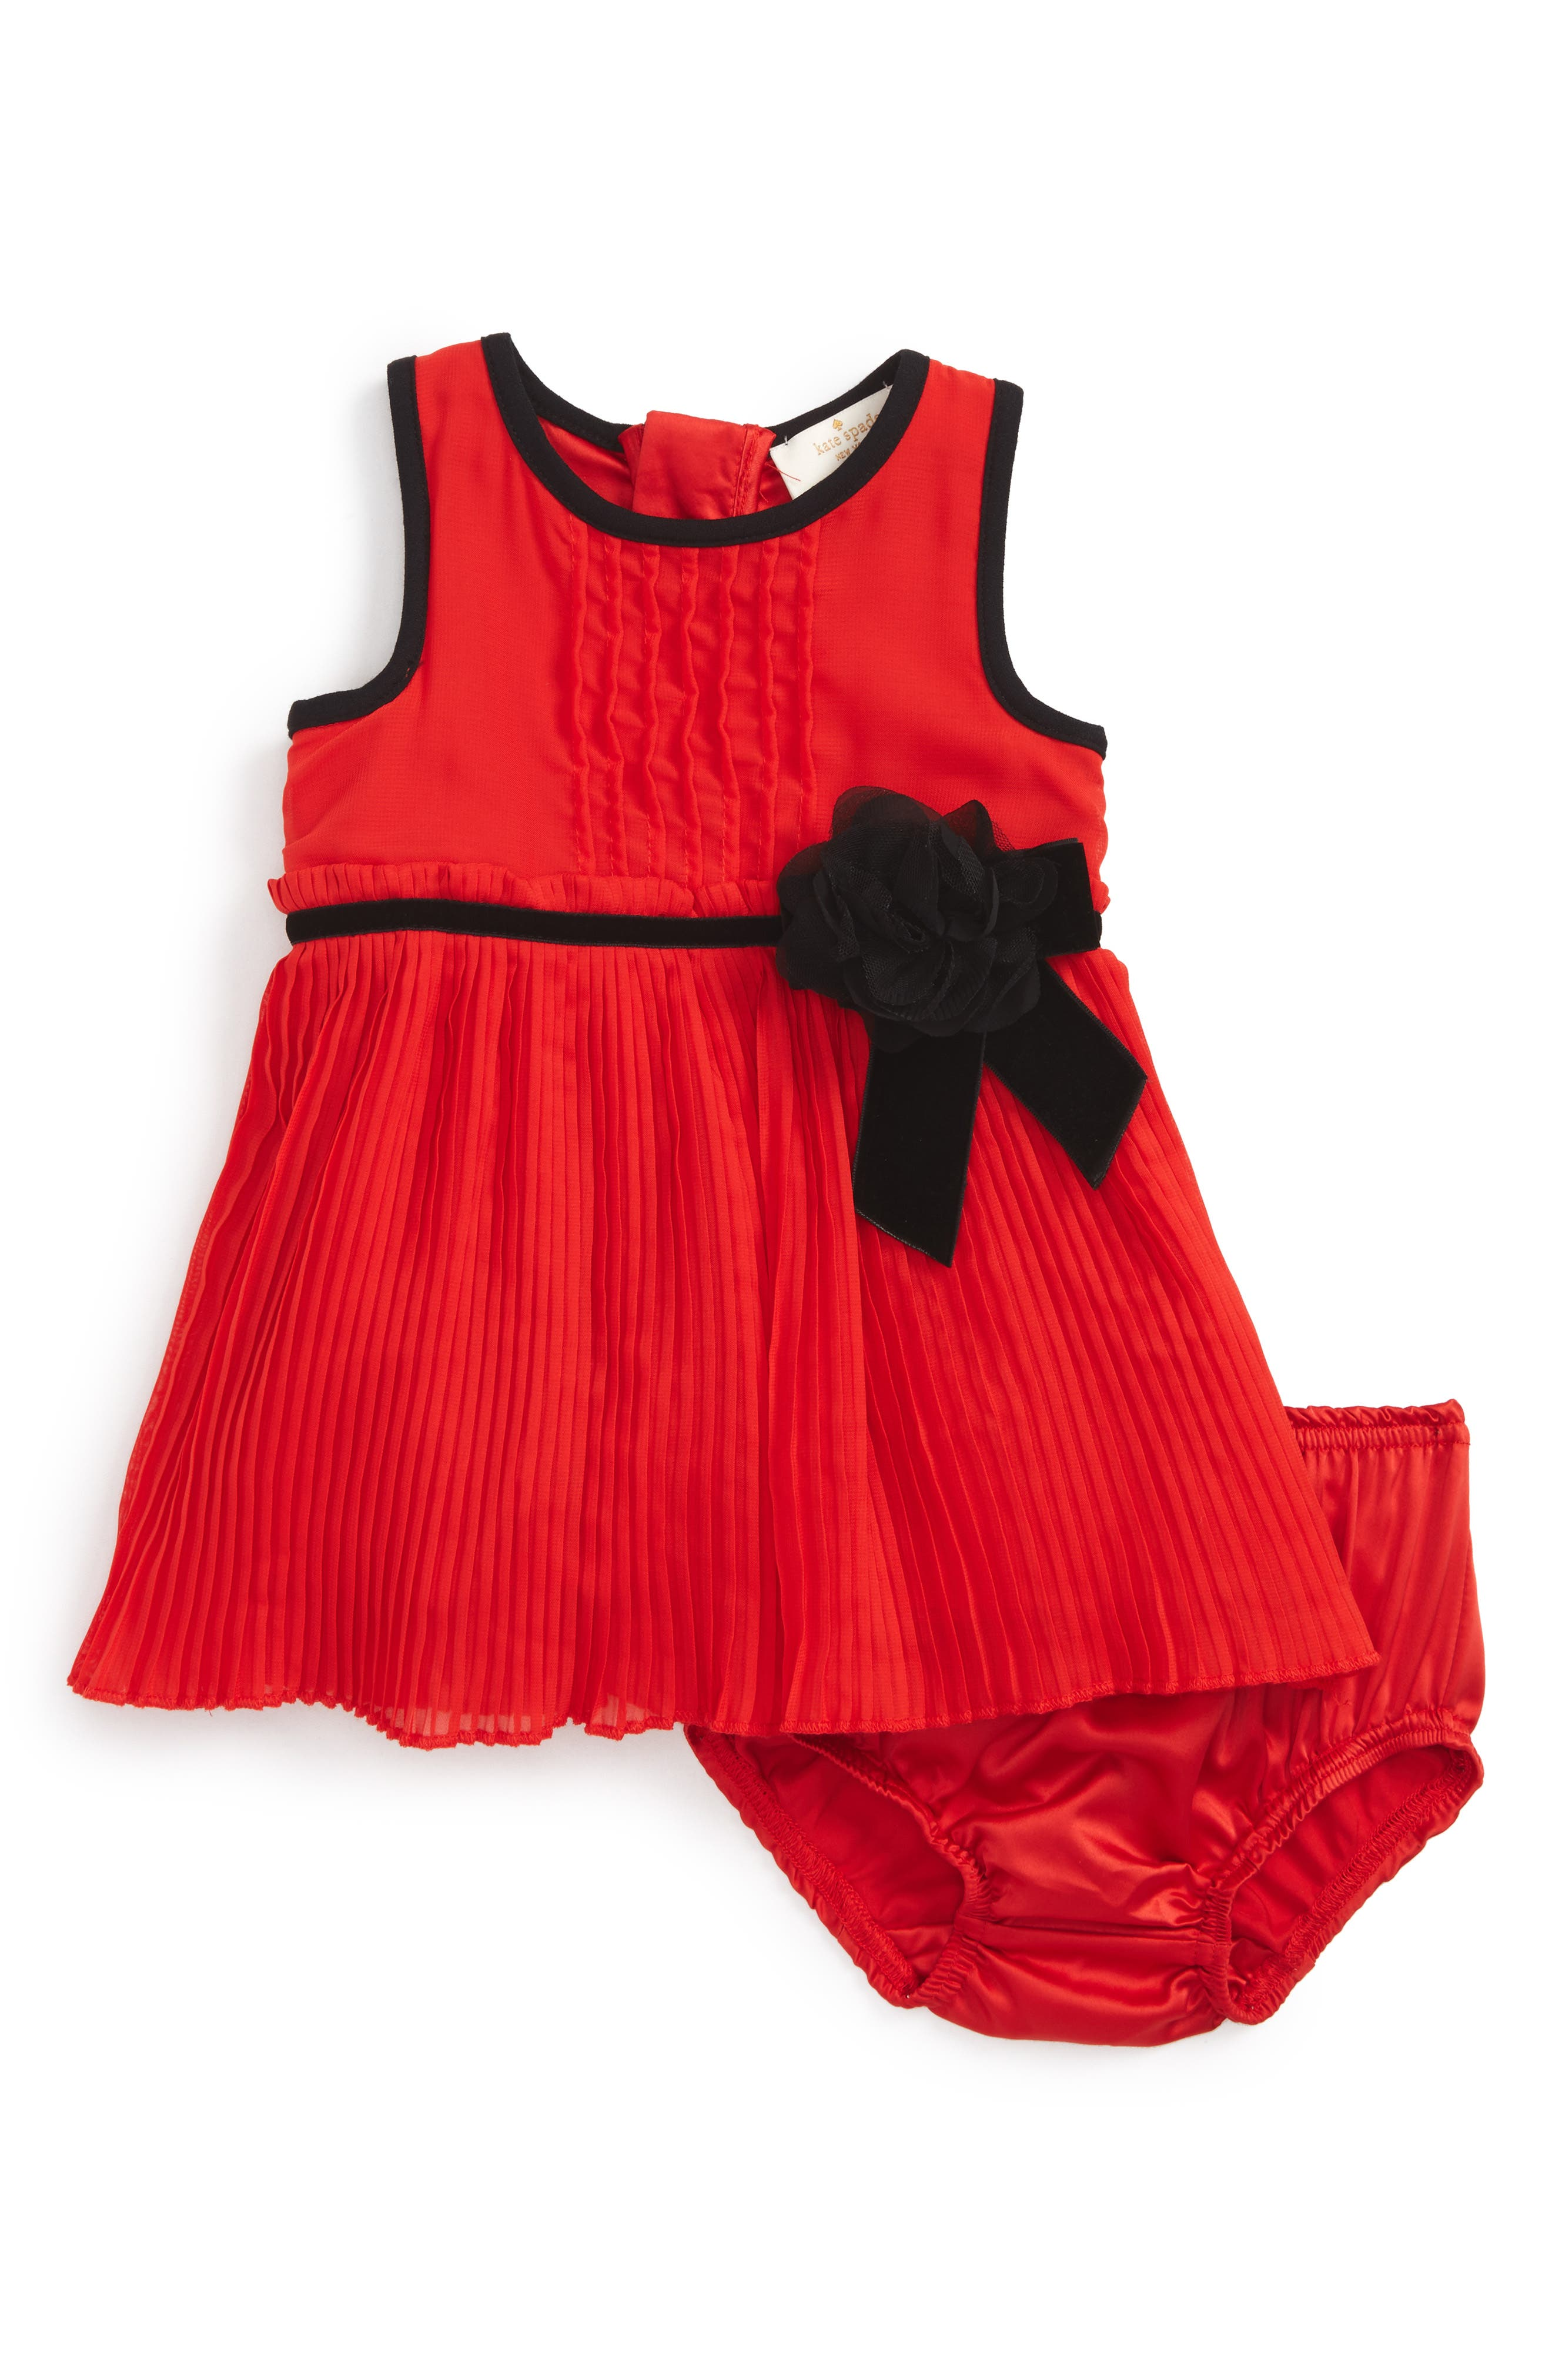 Main Image - kate spade new york chiffon dress (Baby Girls)